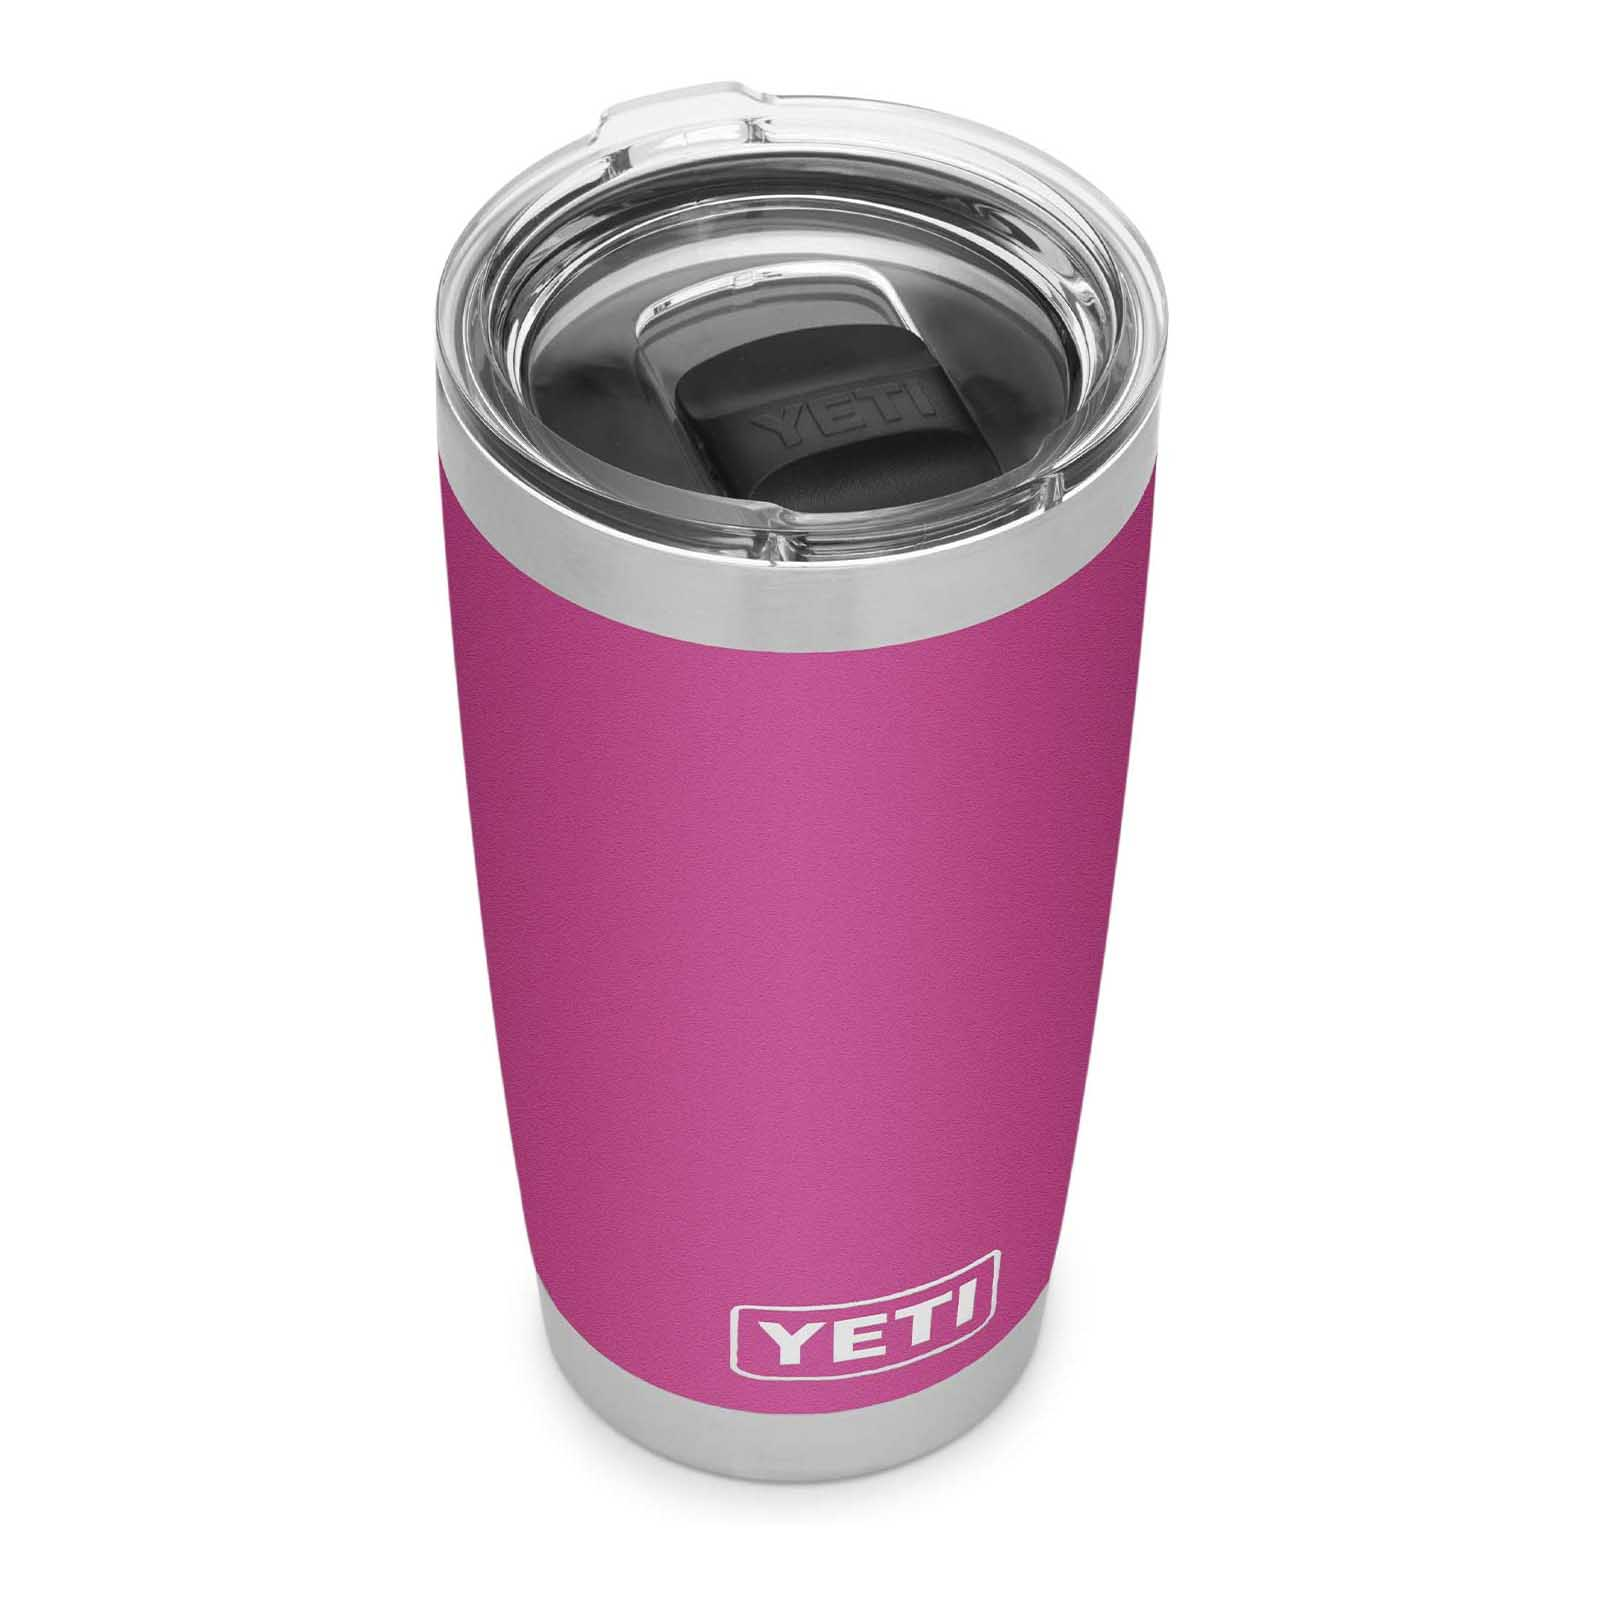 Best Insulted Tumbler for Coffee: YETI Rambler 20 oz Tumbler, Stainless Steel, Vacuum Insulated with MagSlider Lid